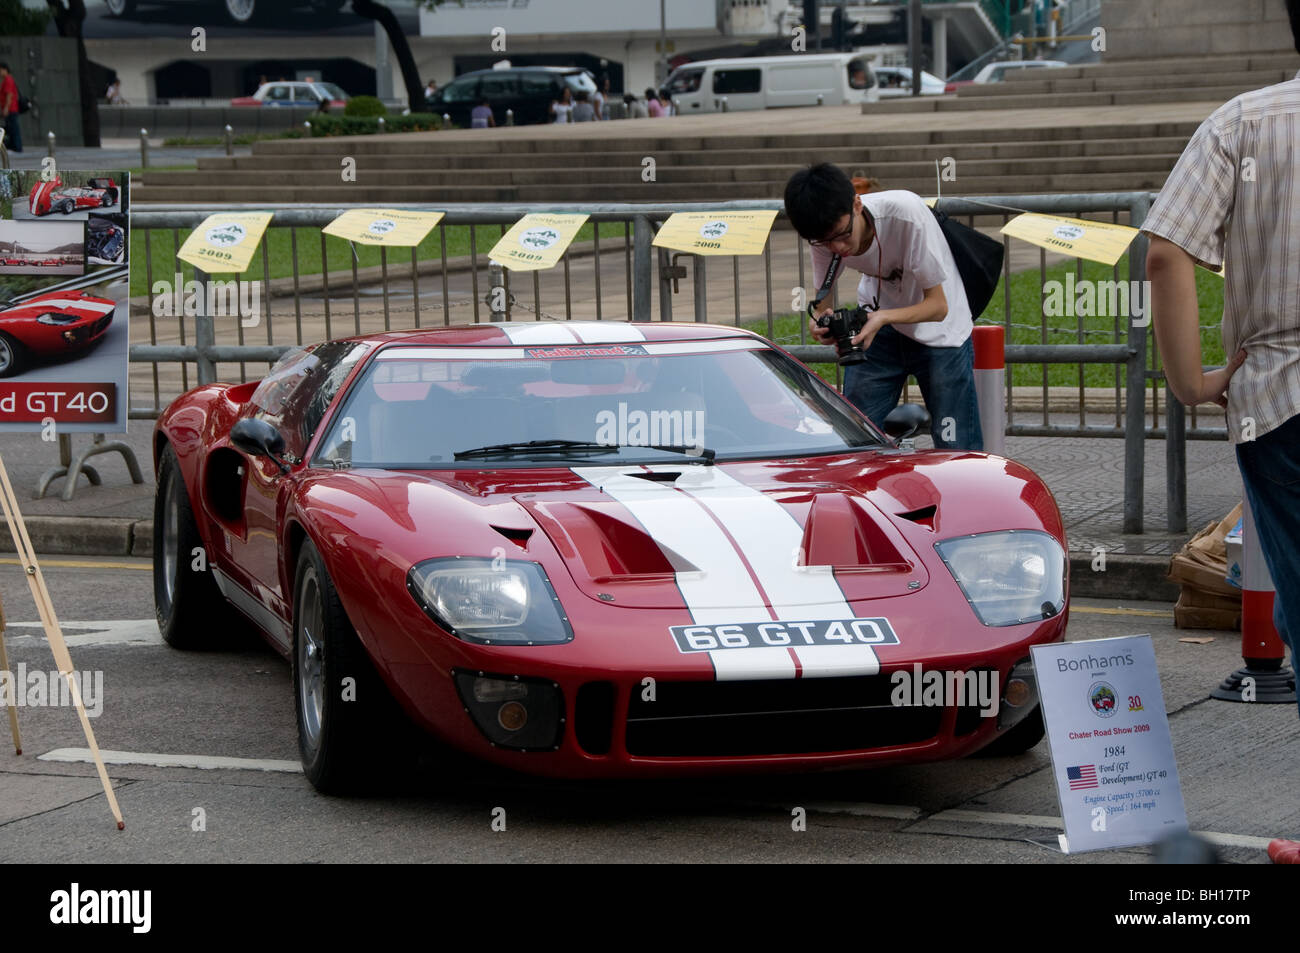 A Ford Gt On Display At A Classic Car Show In The Central District Of Hong